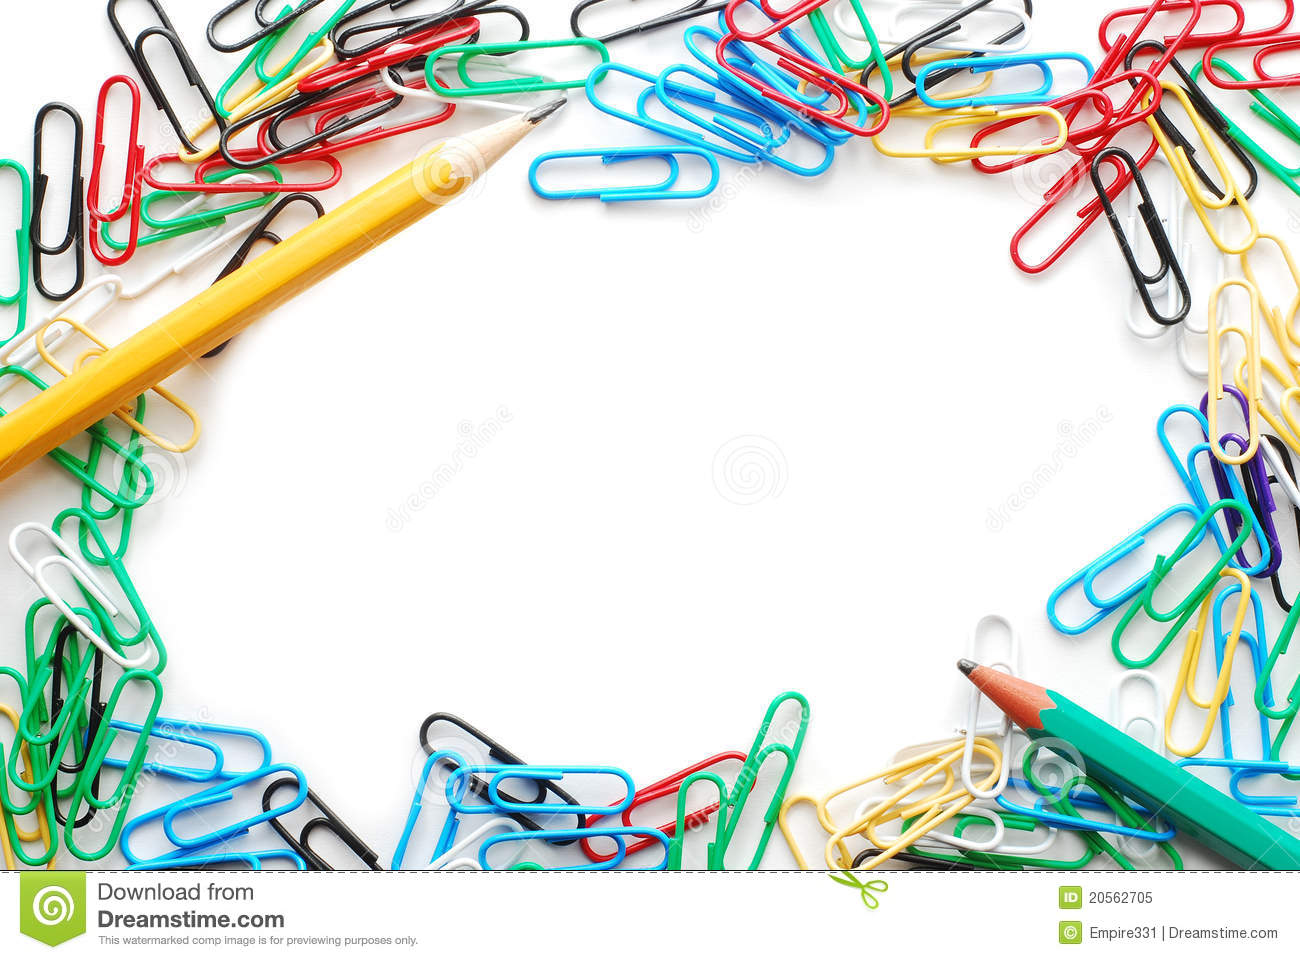 Paper clip border stock image. Image of pencil, stationary ...  Paper